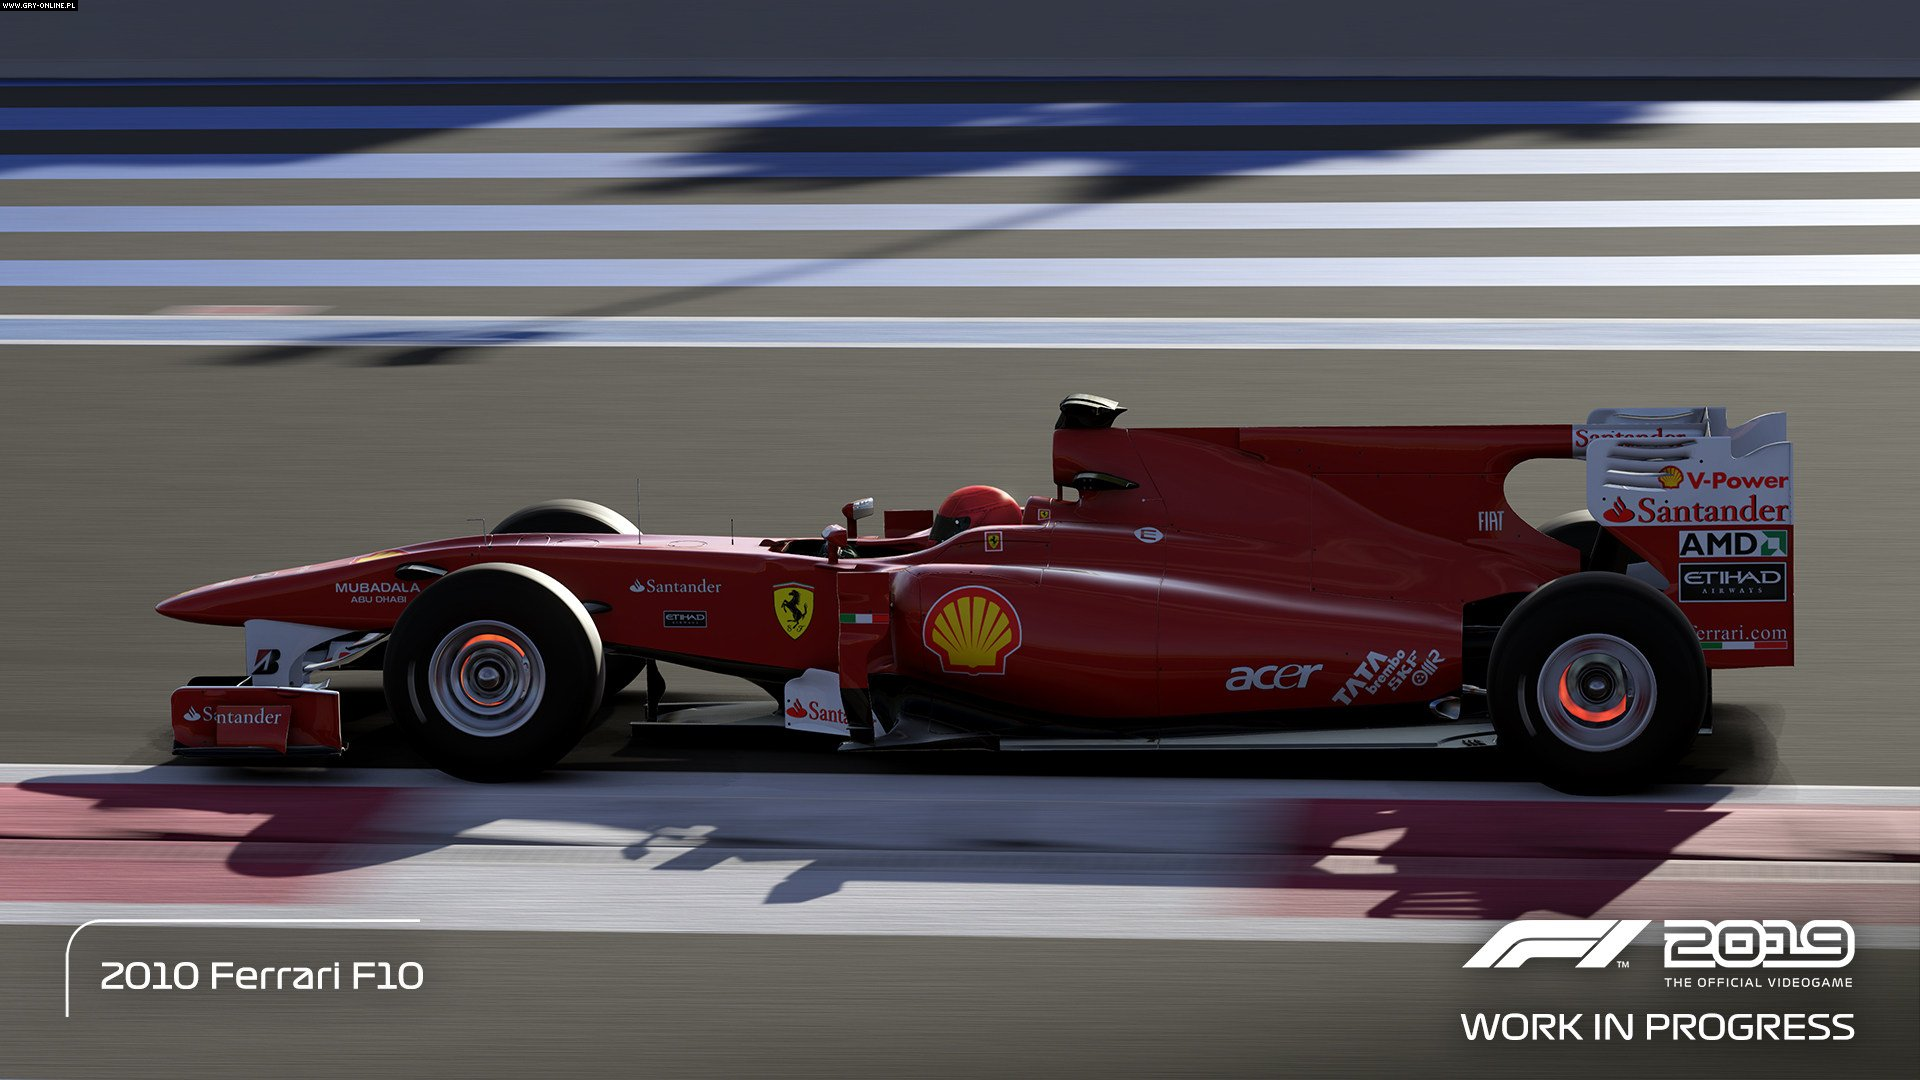 F1 2019 PC, PS4, XONE Games Image 92/104, Codemasters Software